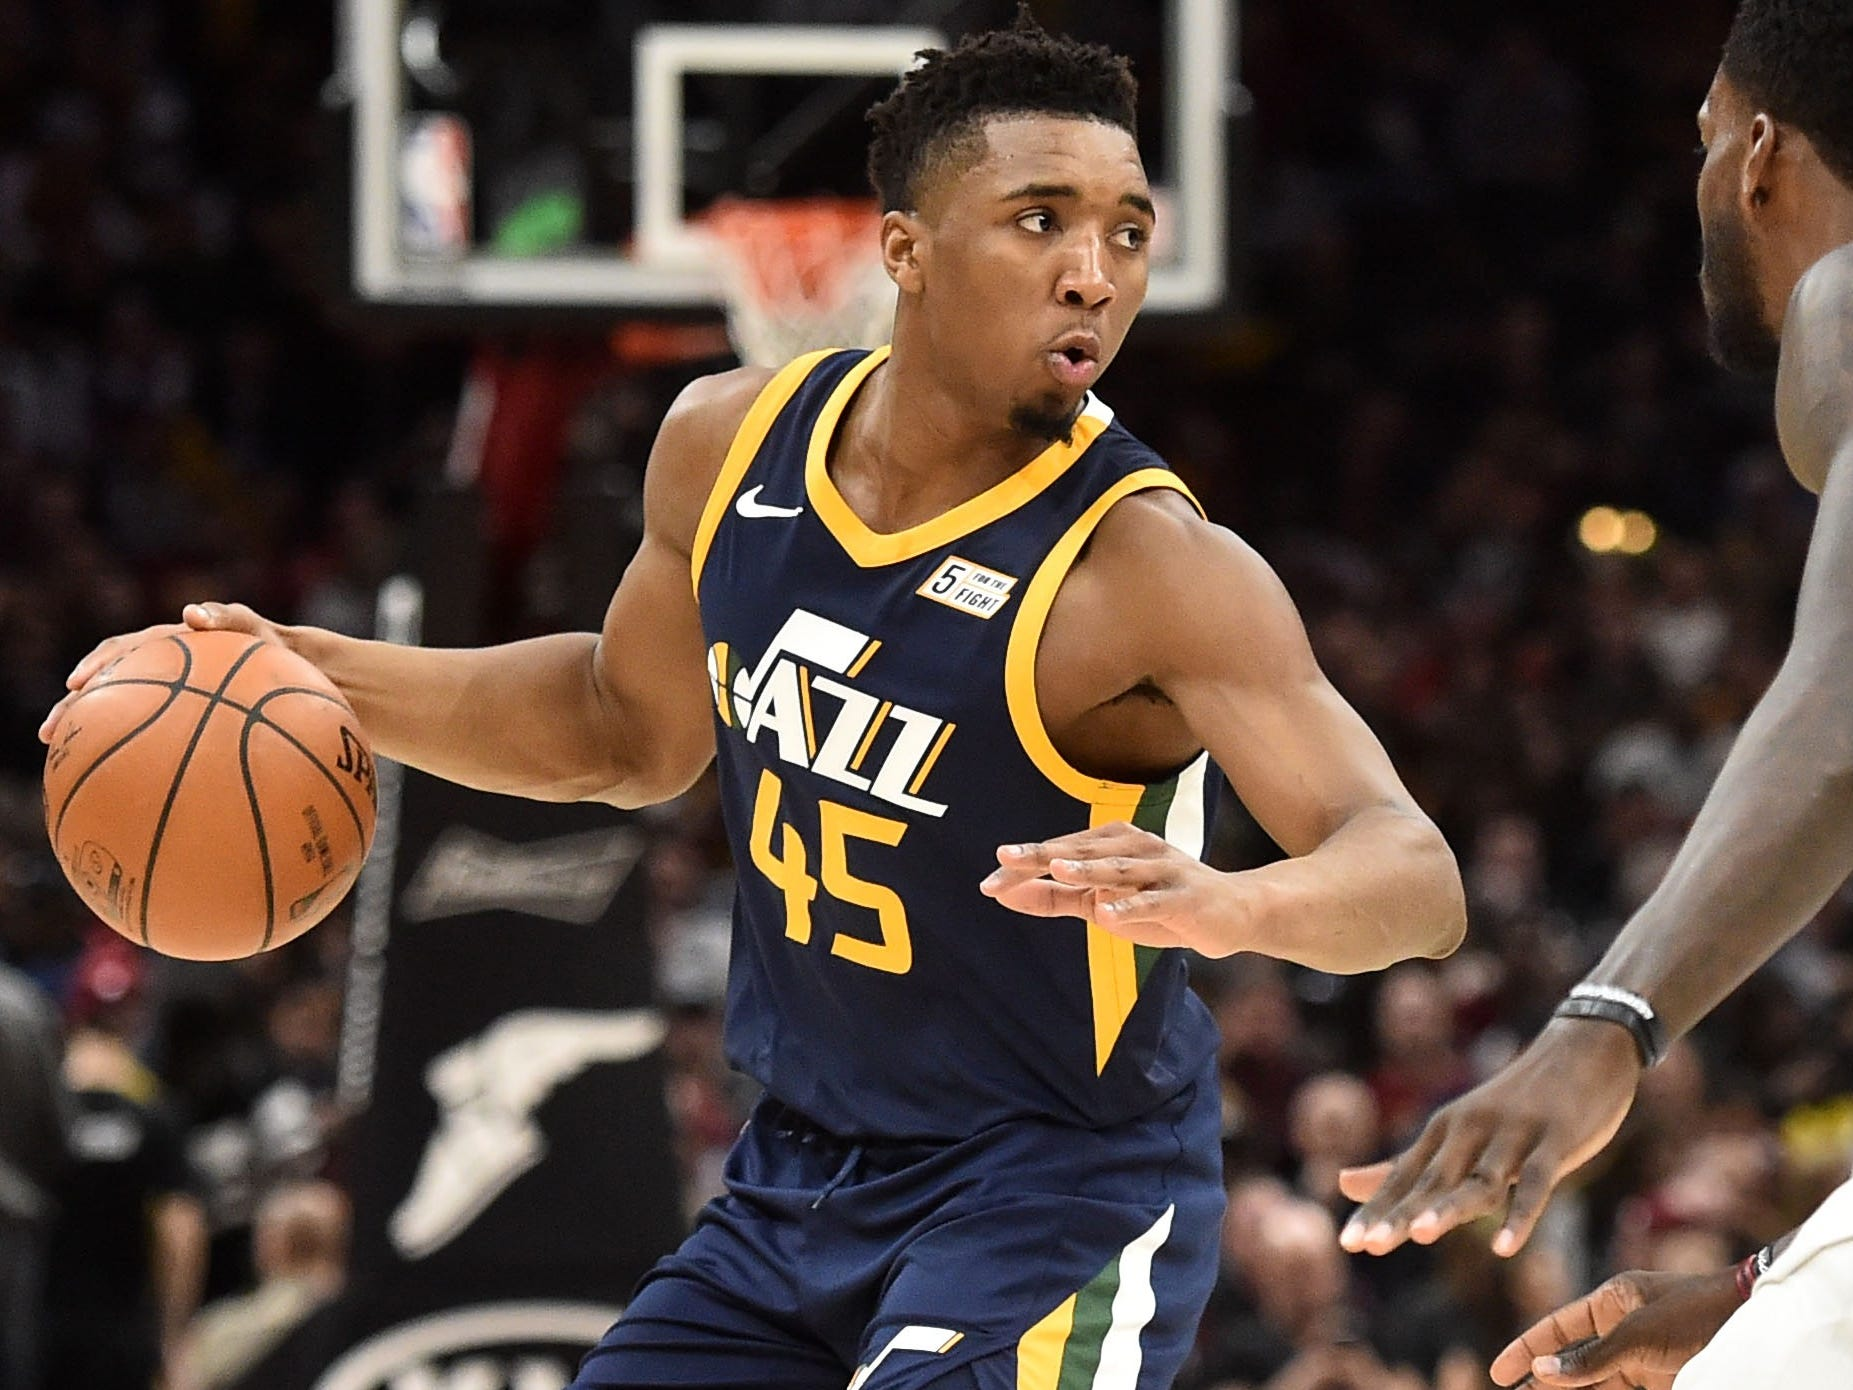 Donovan Mitchell, Utah Jazz — 22 (born 9/7/1996)